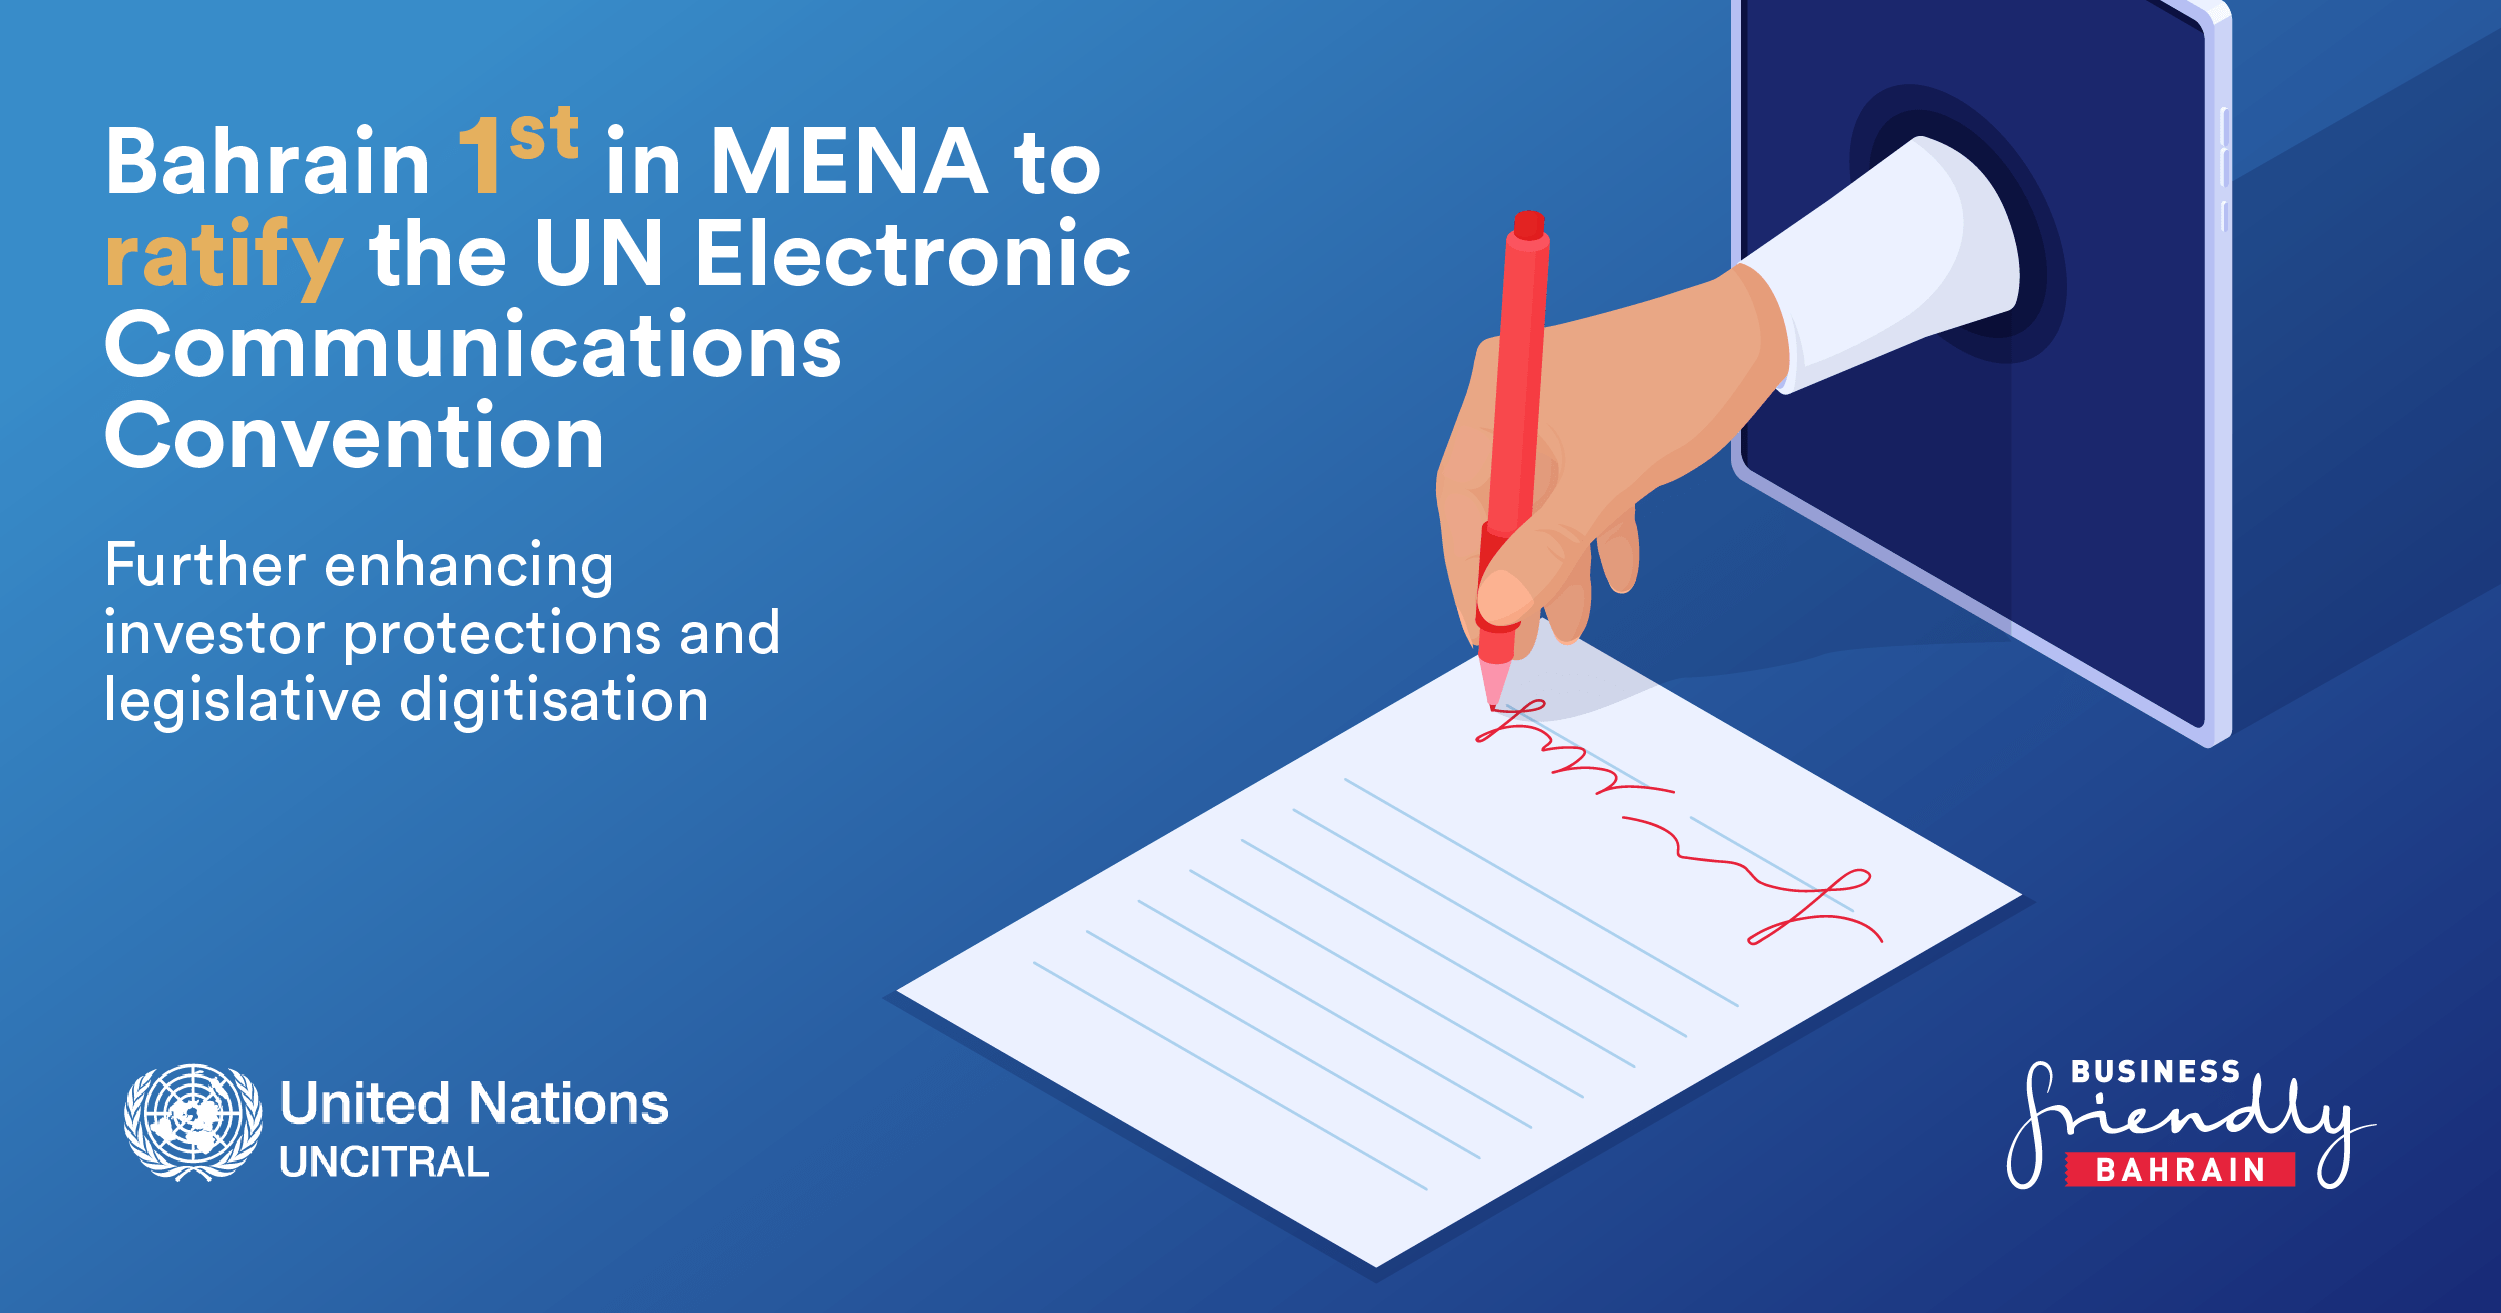 Bahrain becomes 1st country in MENA to ratify United Nations treaty on electronic communications